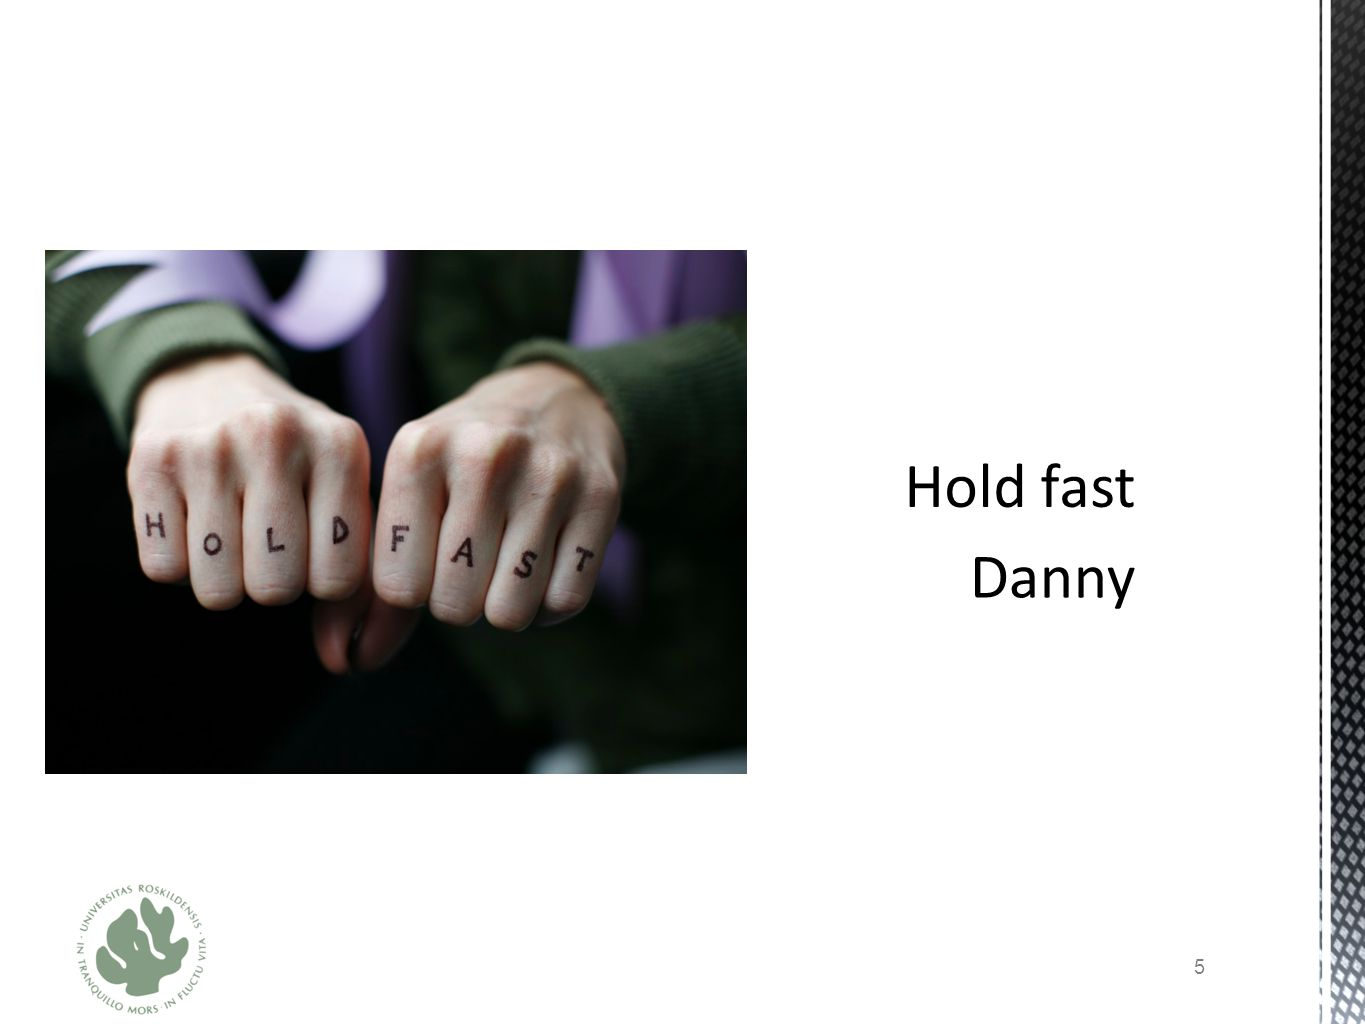 Hold fast Danny